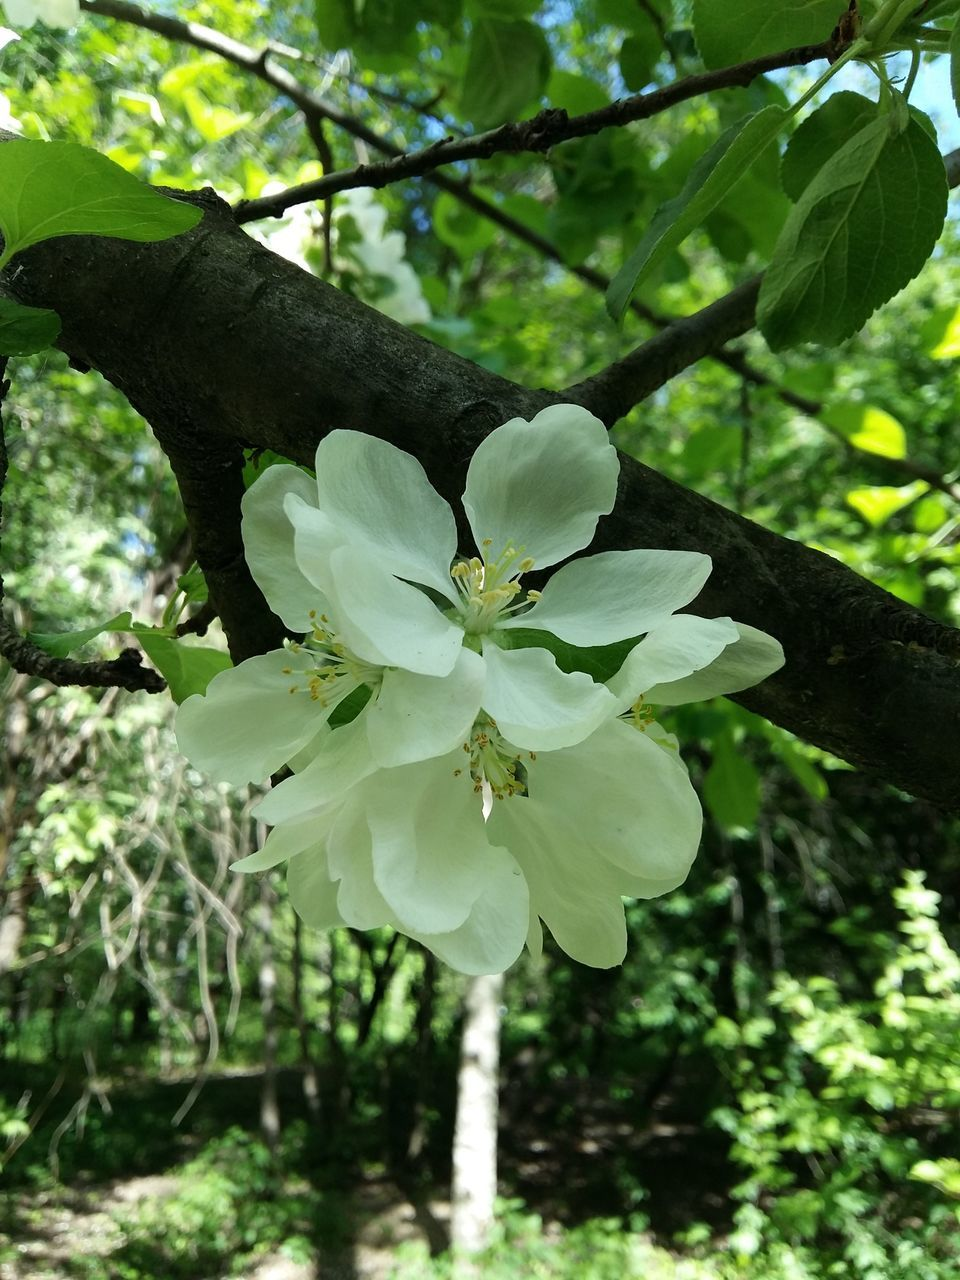 growth, flower, tree, nature, beauty in nature, fragility, branch, no people, leaf, petal, plant, freshness, outdoors, day, close-up, flower head